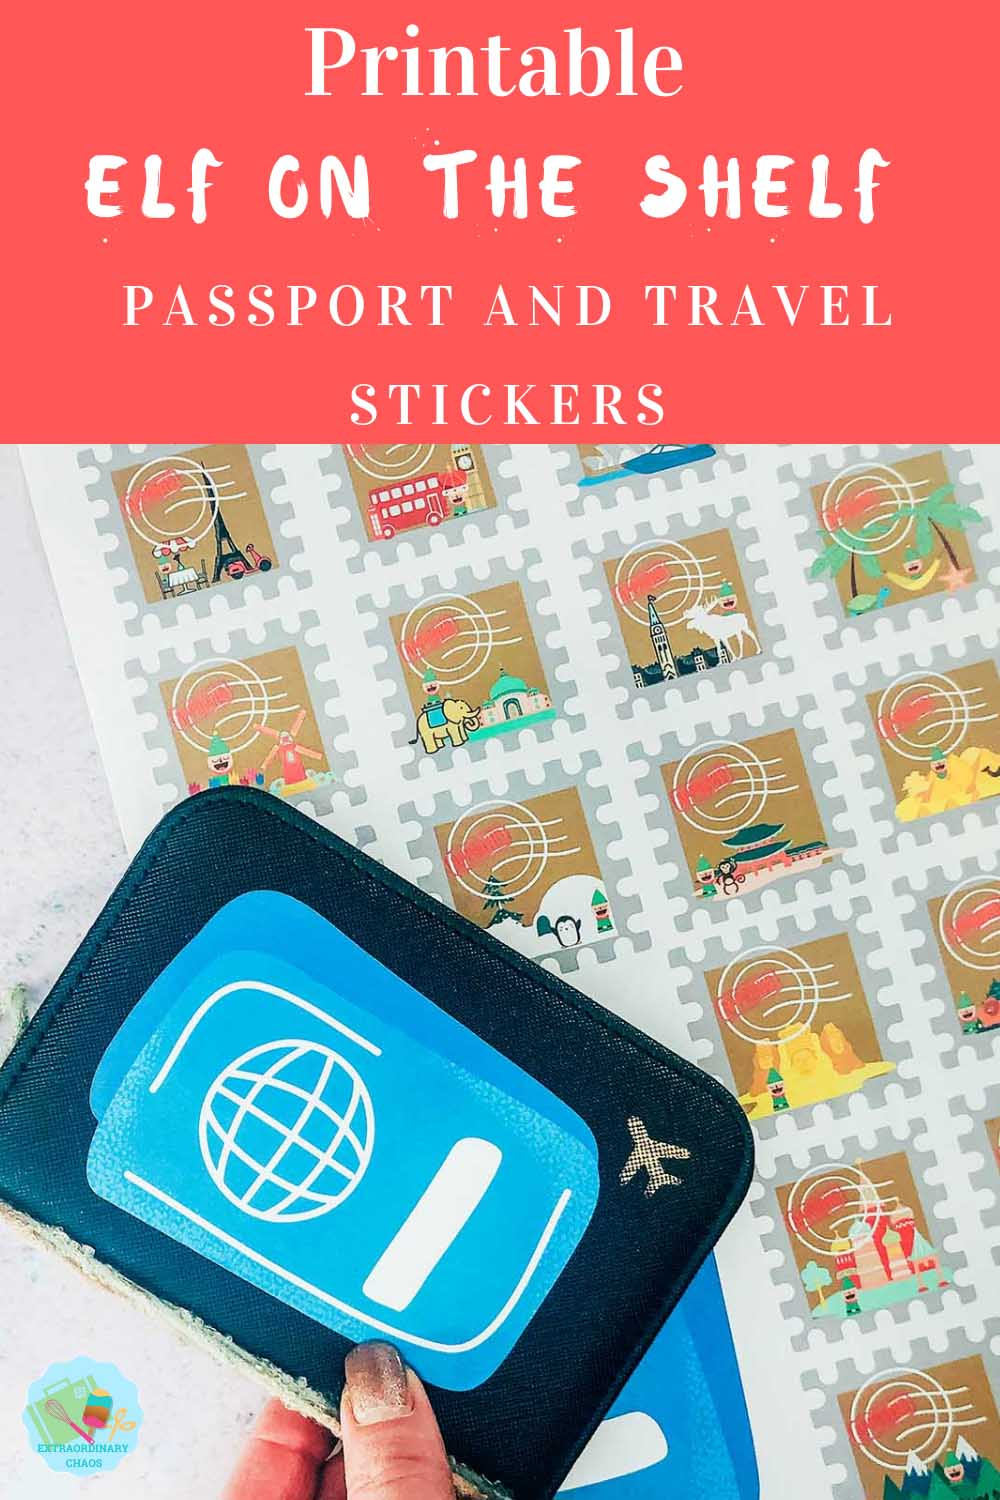 Free Printable Elf on the shelf passport and travel stickers download